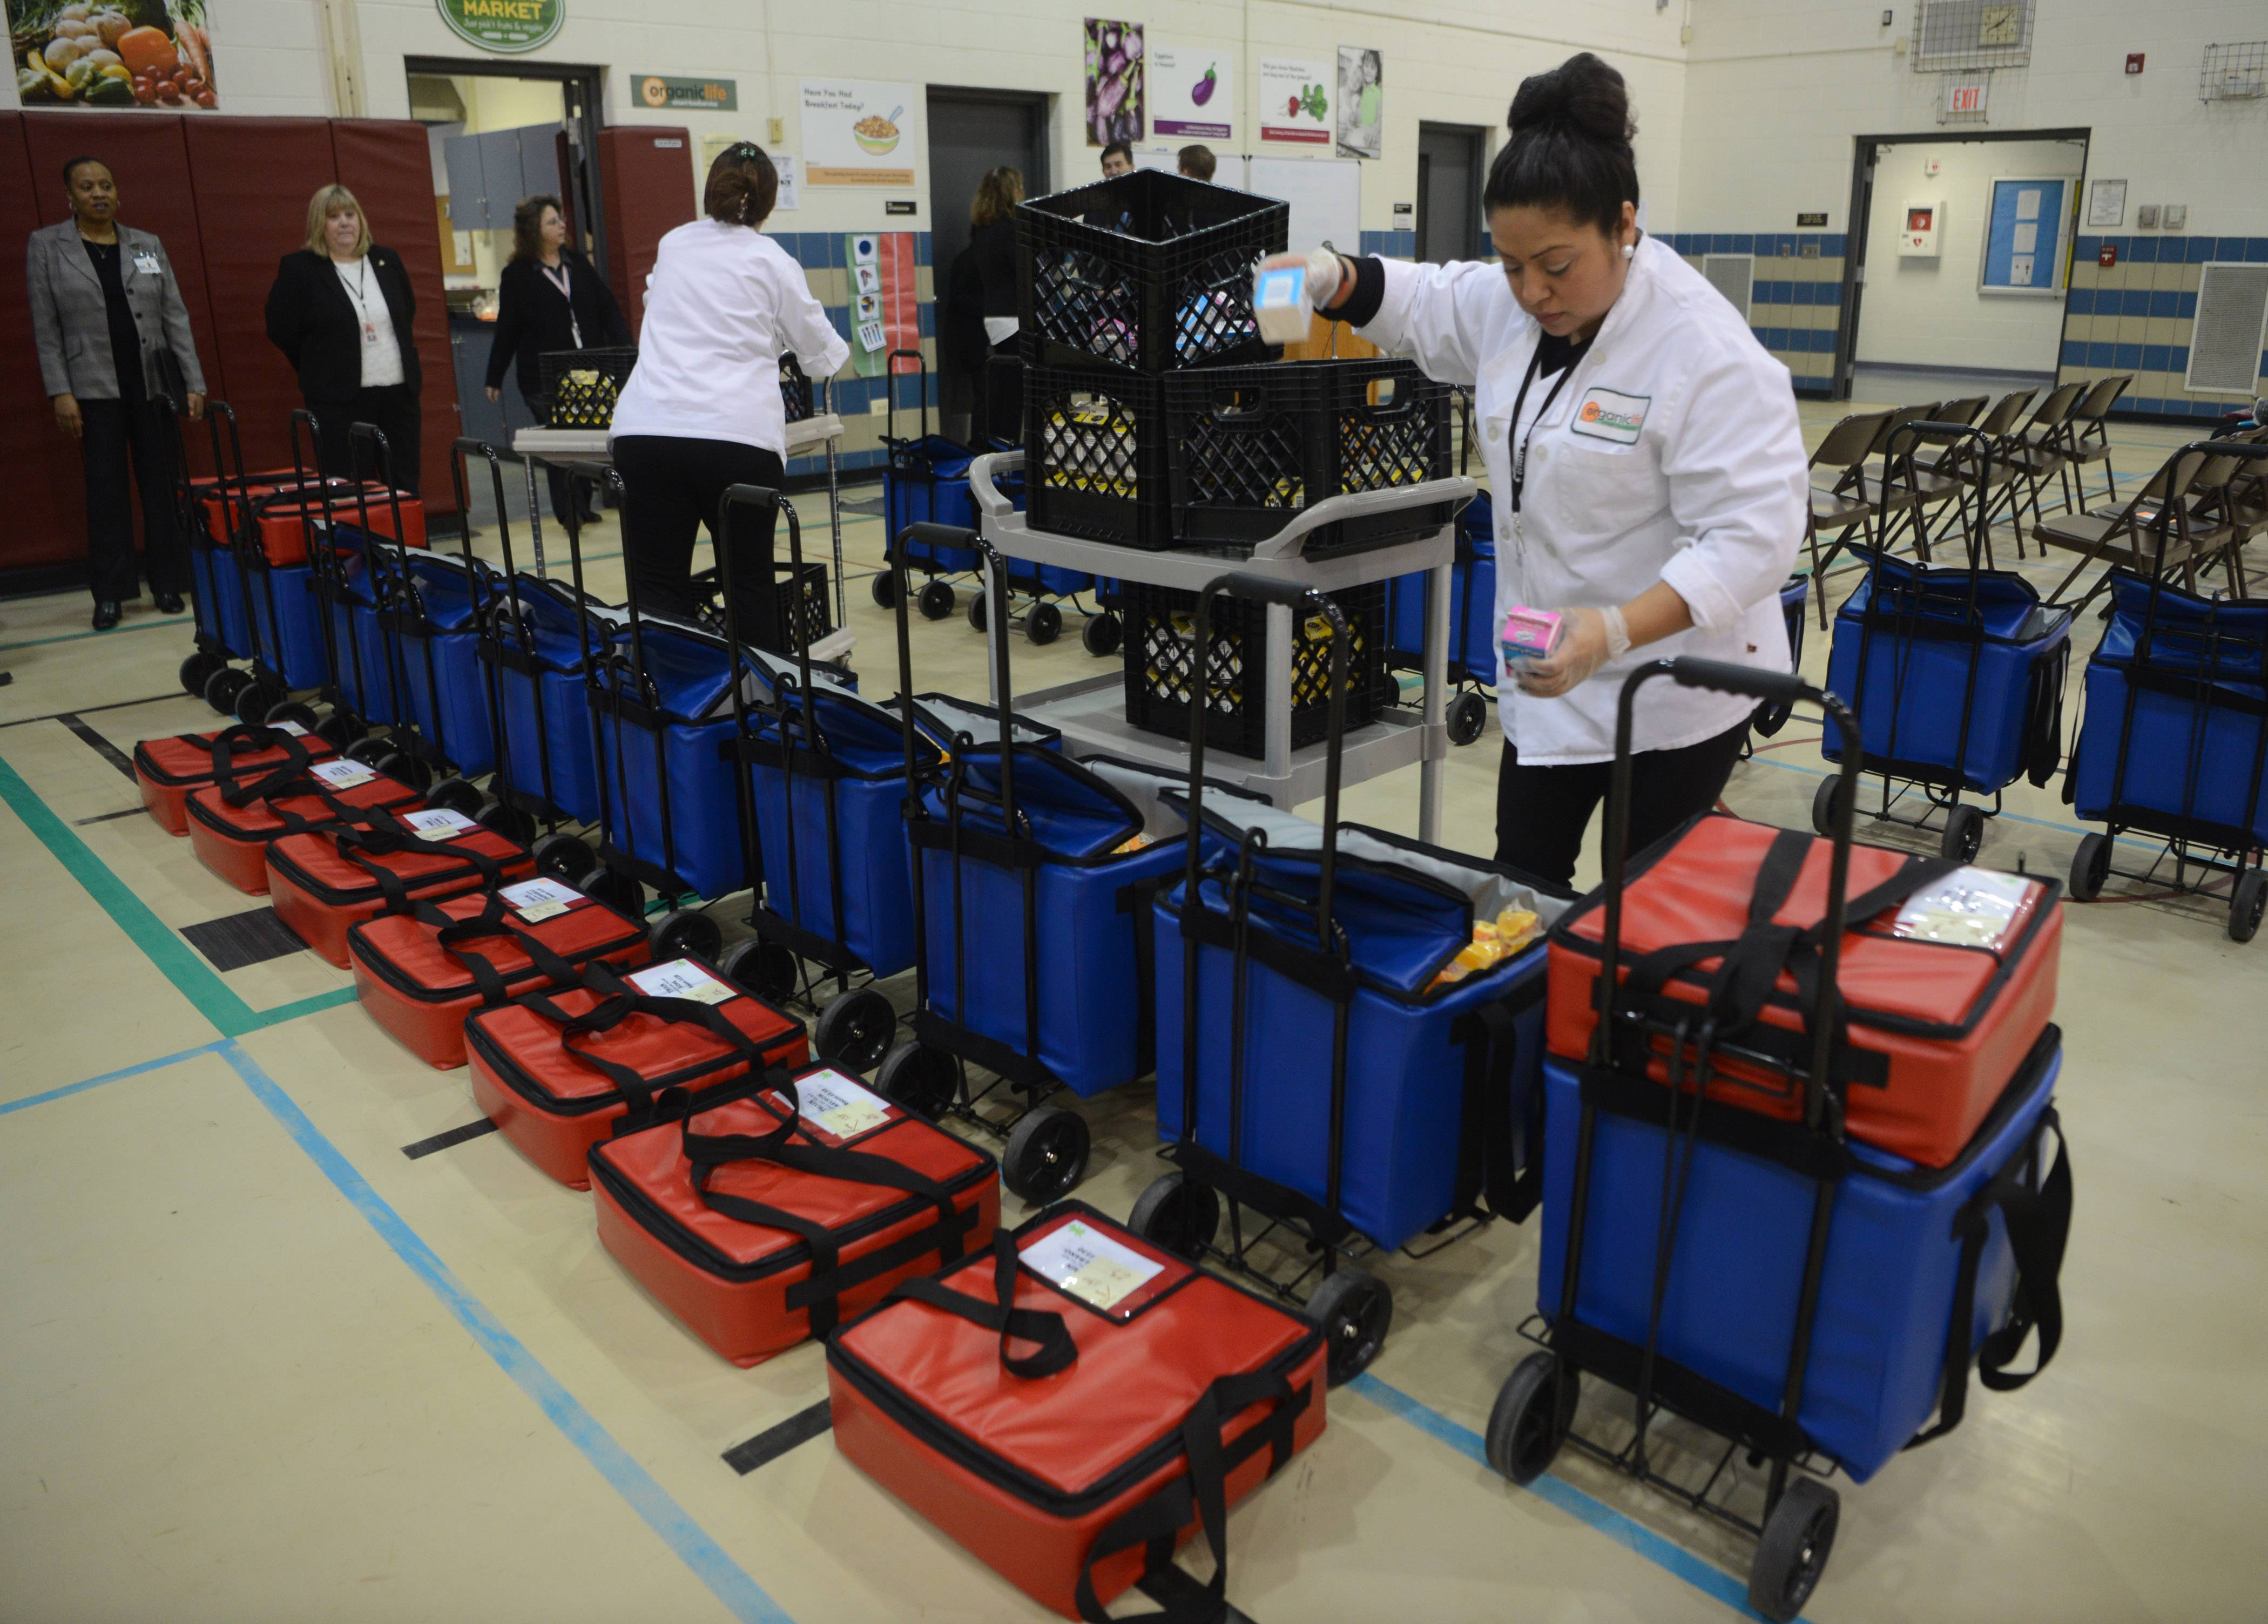 Food service worker Hanny Macedo packs carriers for the Breakfast After the Bell program Thursday at Mark Twain Elementary School in Wheeling.